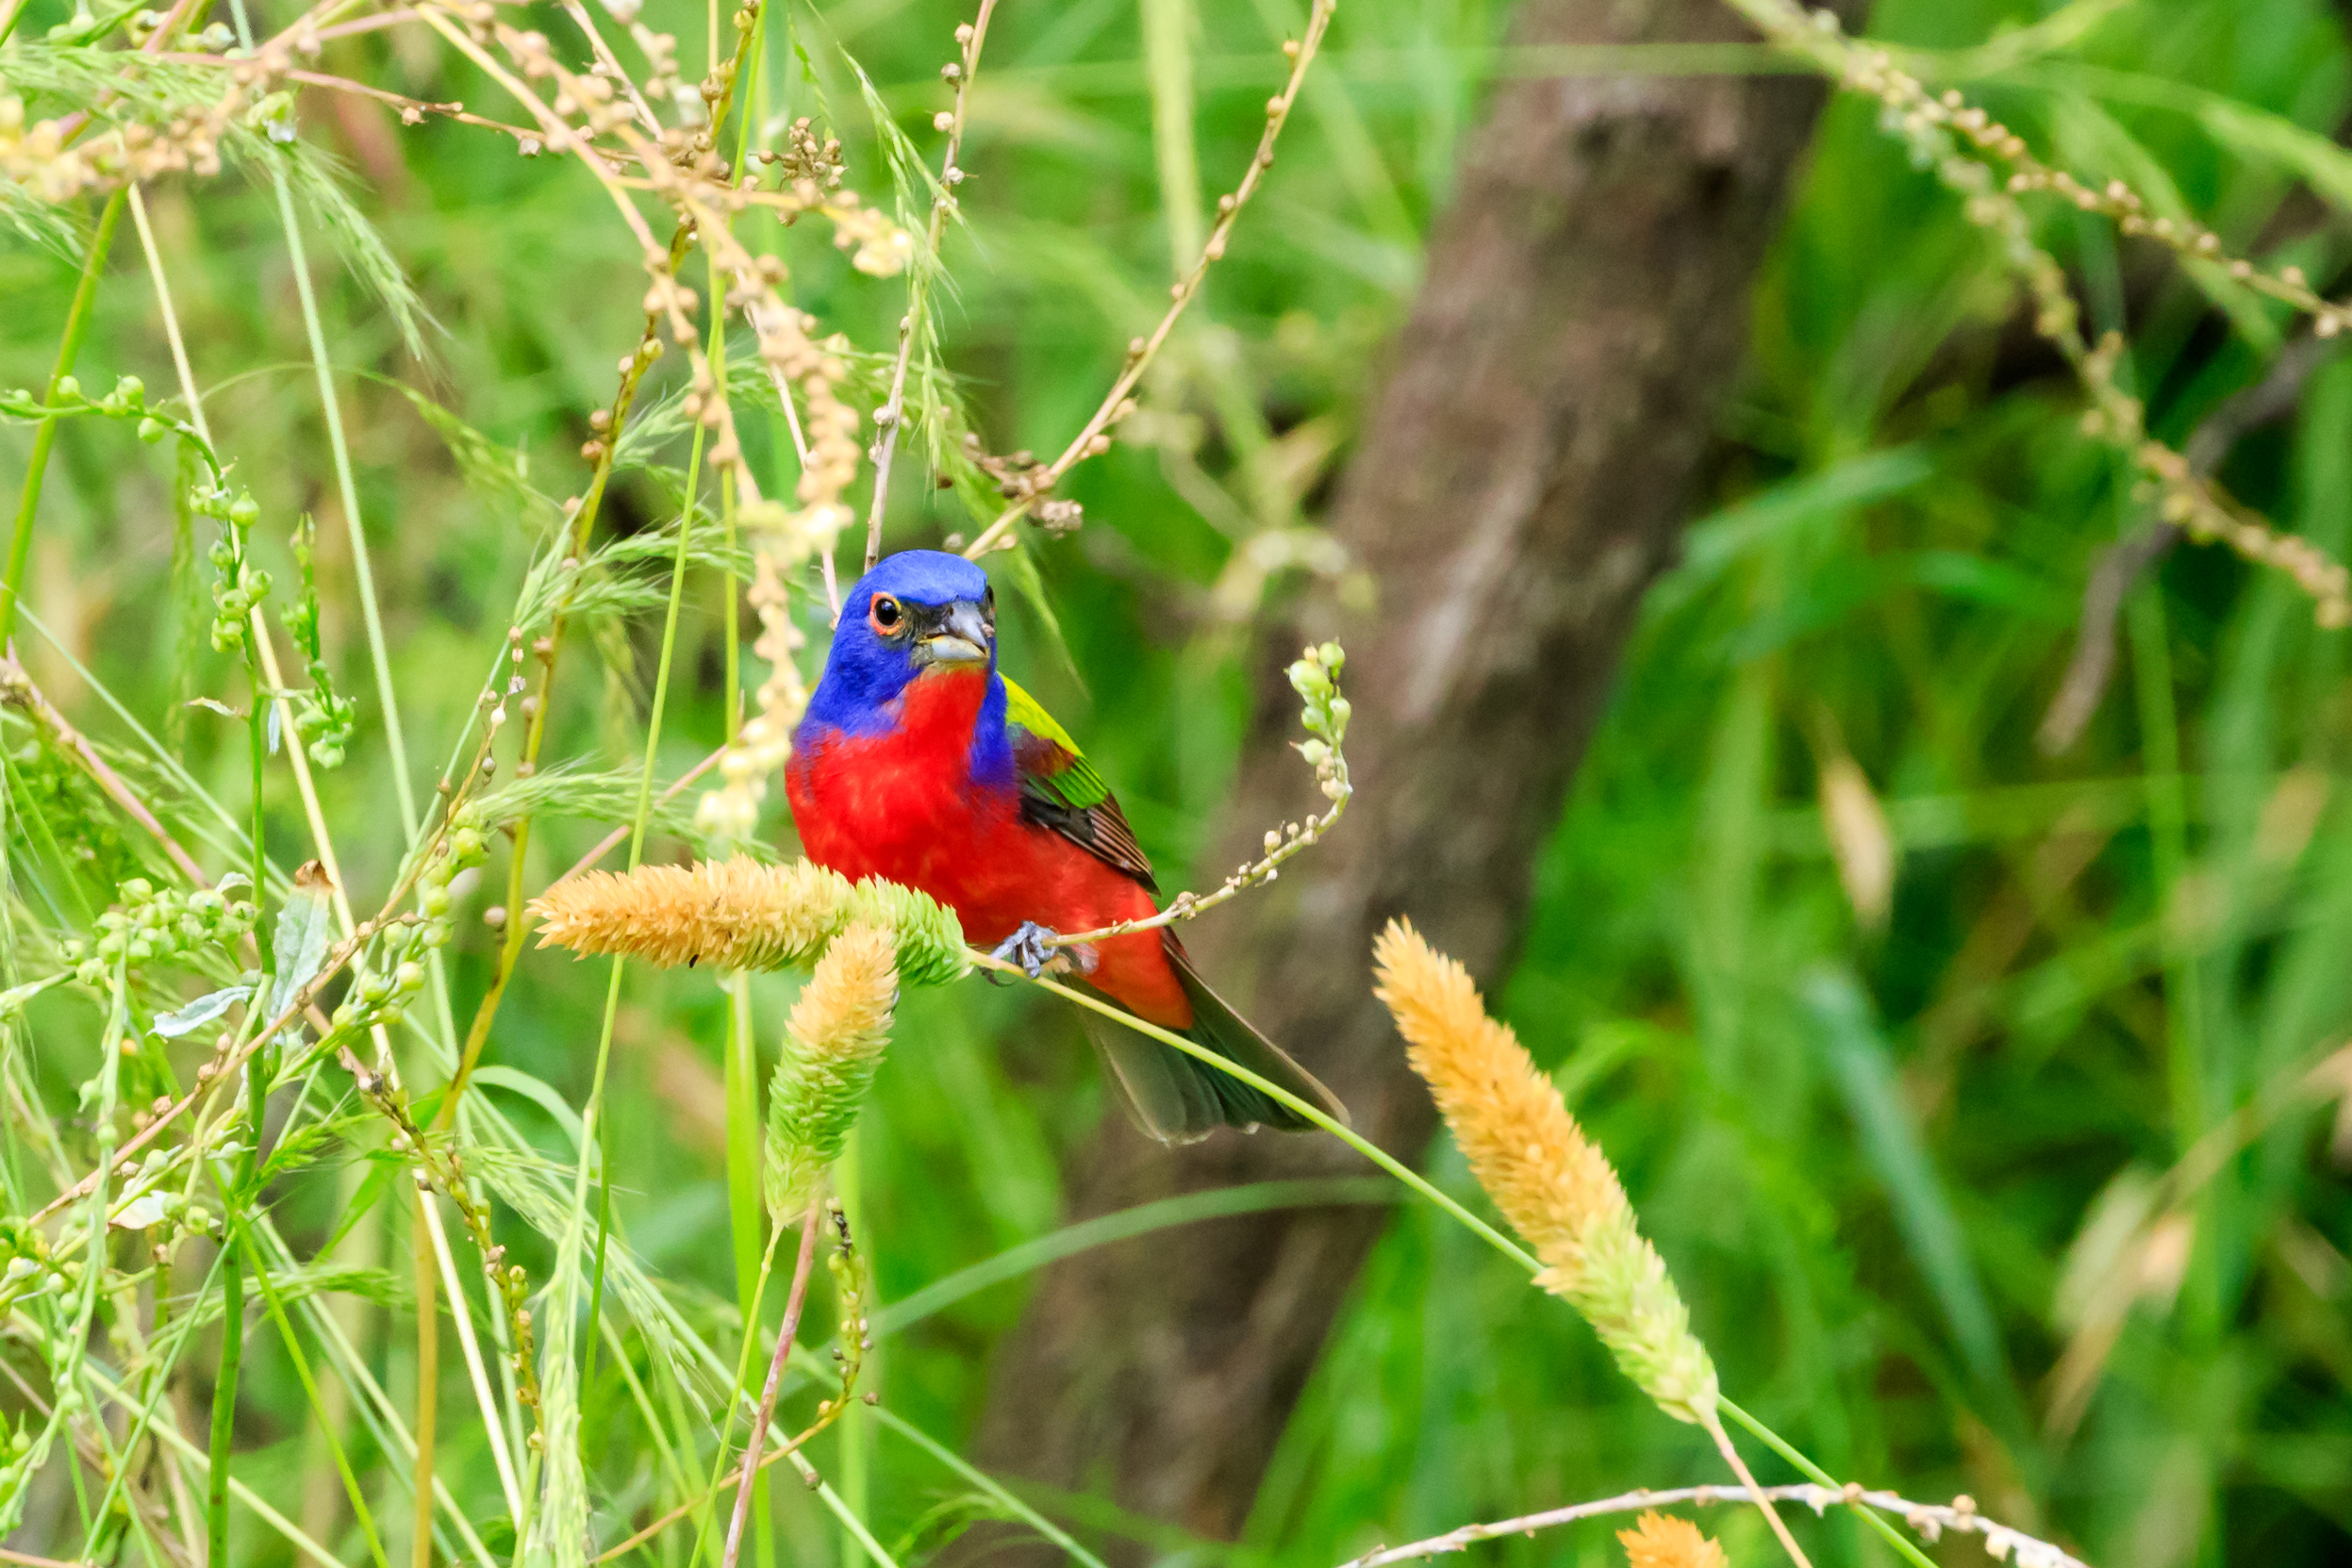 Species: Painted Bunting Photo Credit: Damian Martinez Date: May 2019 Location: Hondo Nature Trail